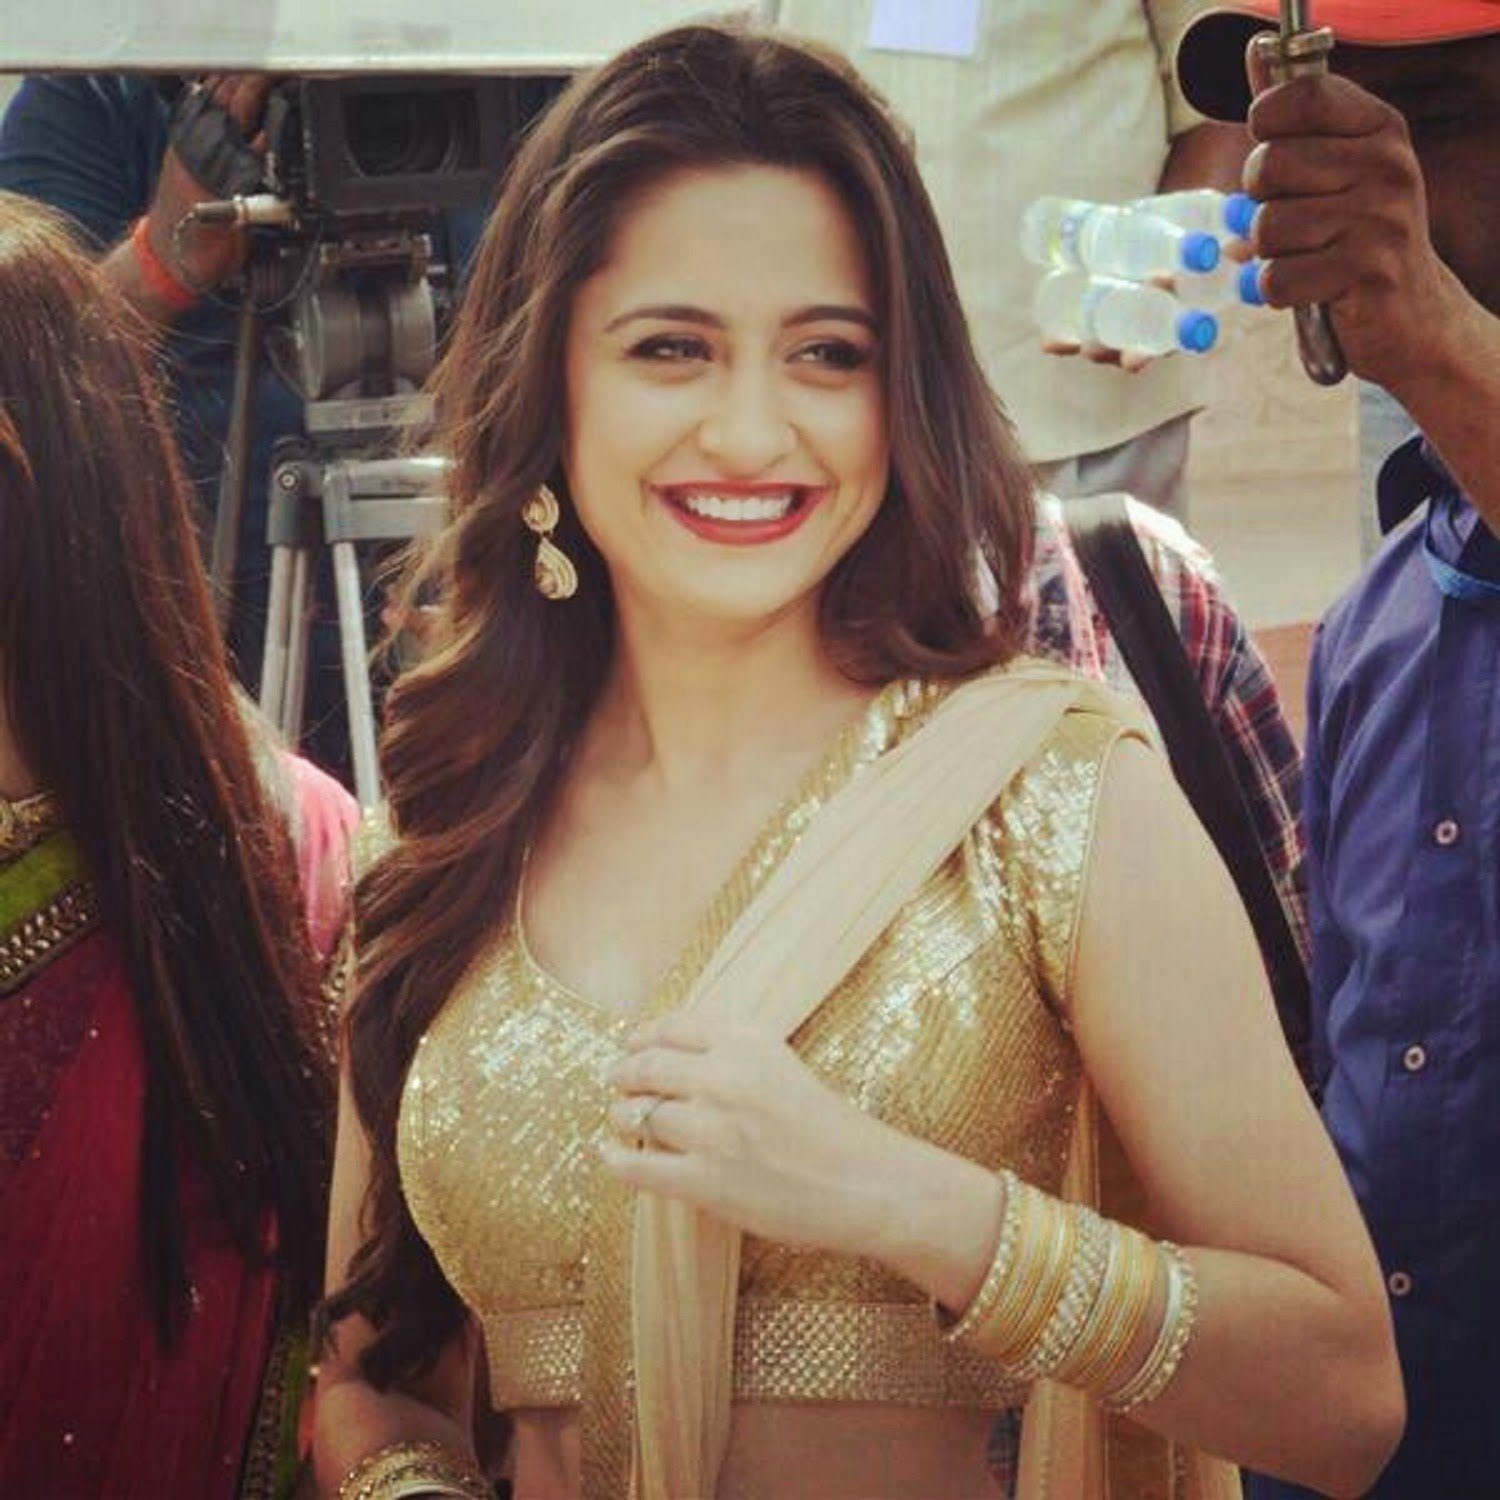 indian tv, Indian television, Indian actress, Bahus, TV Actress, hot tv actress, sexy TV Actress, Indian Television photos, hot actress 2015, tv actress photos, hot tv, sexy tv, tv actor photos, star plus actor, sony tv actor, life ok actor, sab tv actor, colors tv actor, Sanjeeda Sheikh hot